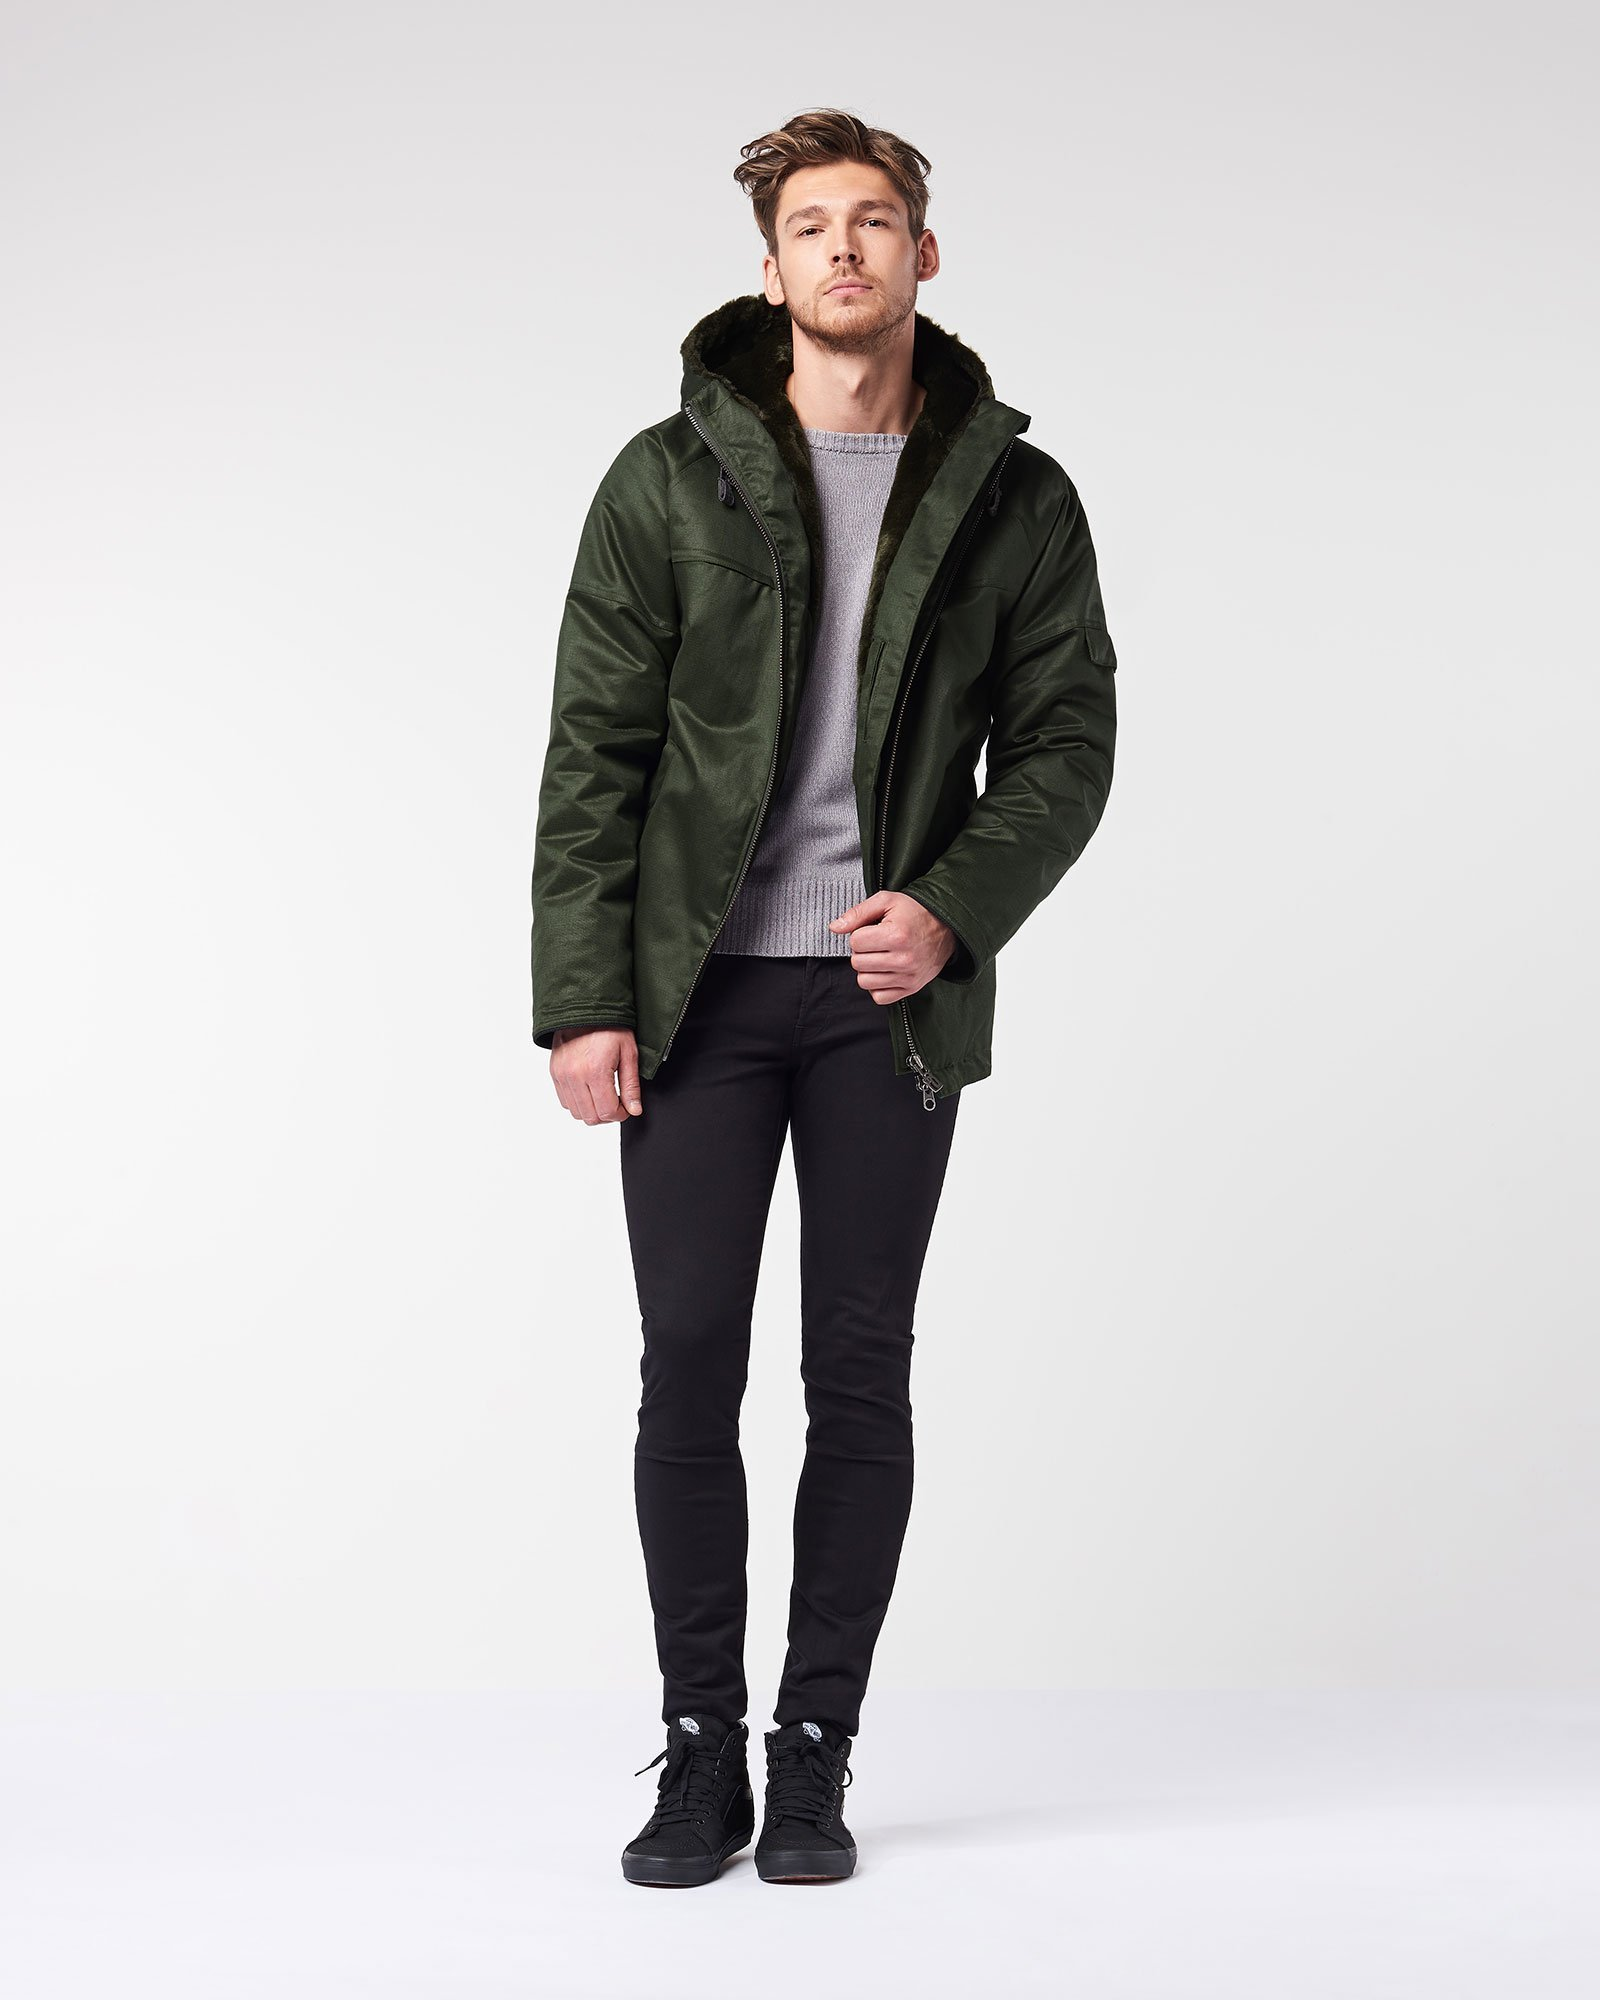 943536d1a048 Men s Classic Hoodlamb in Deep Army Green (FW18) by Hoodlamb ...